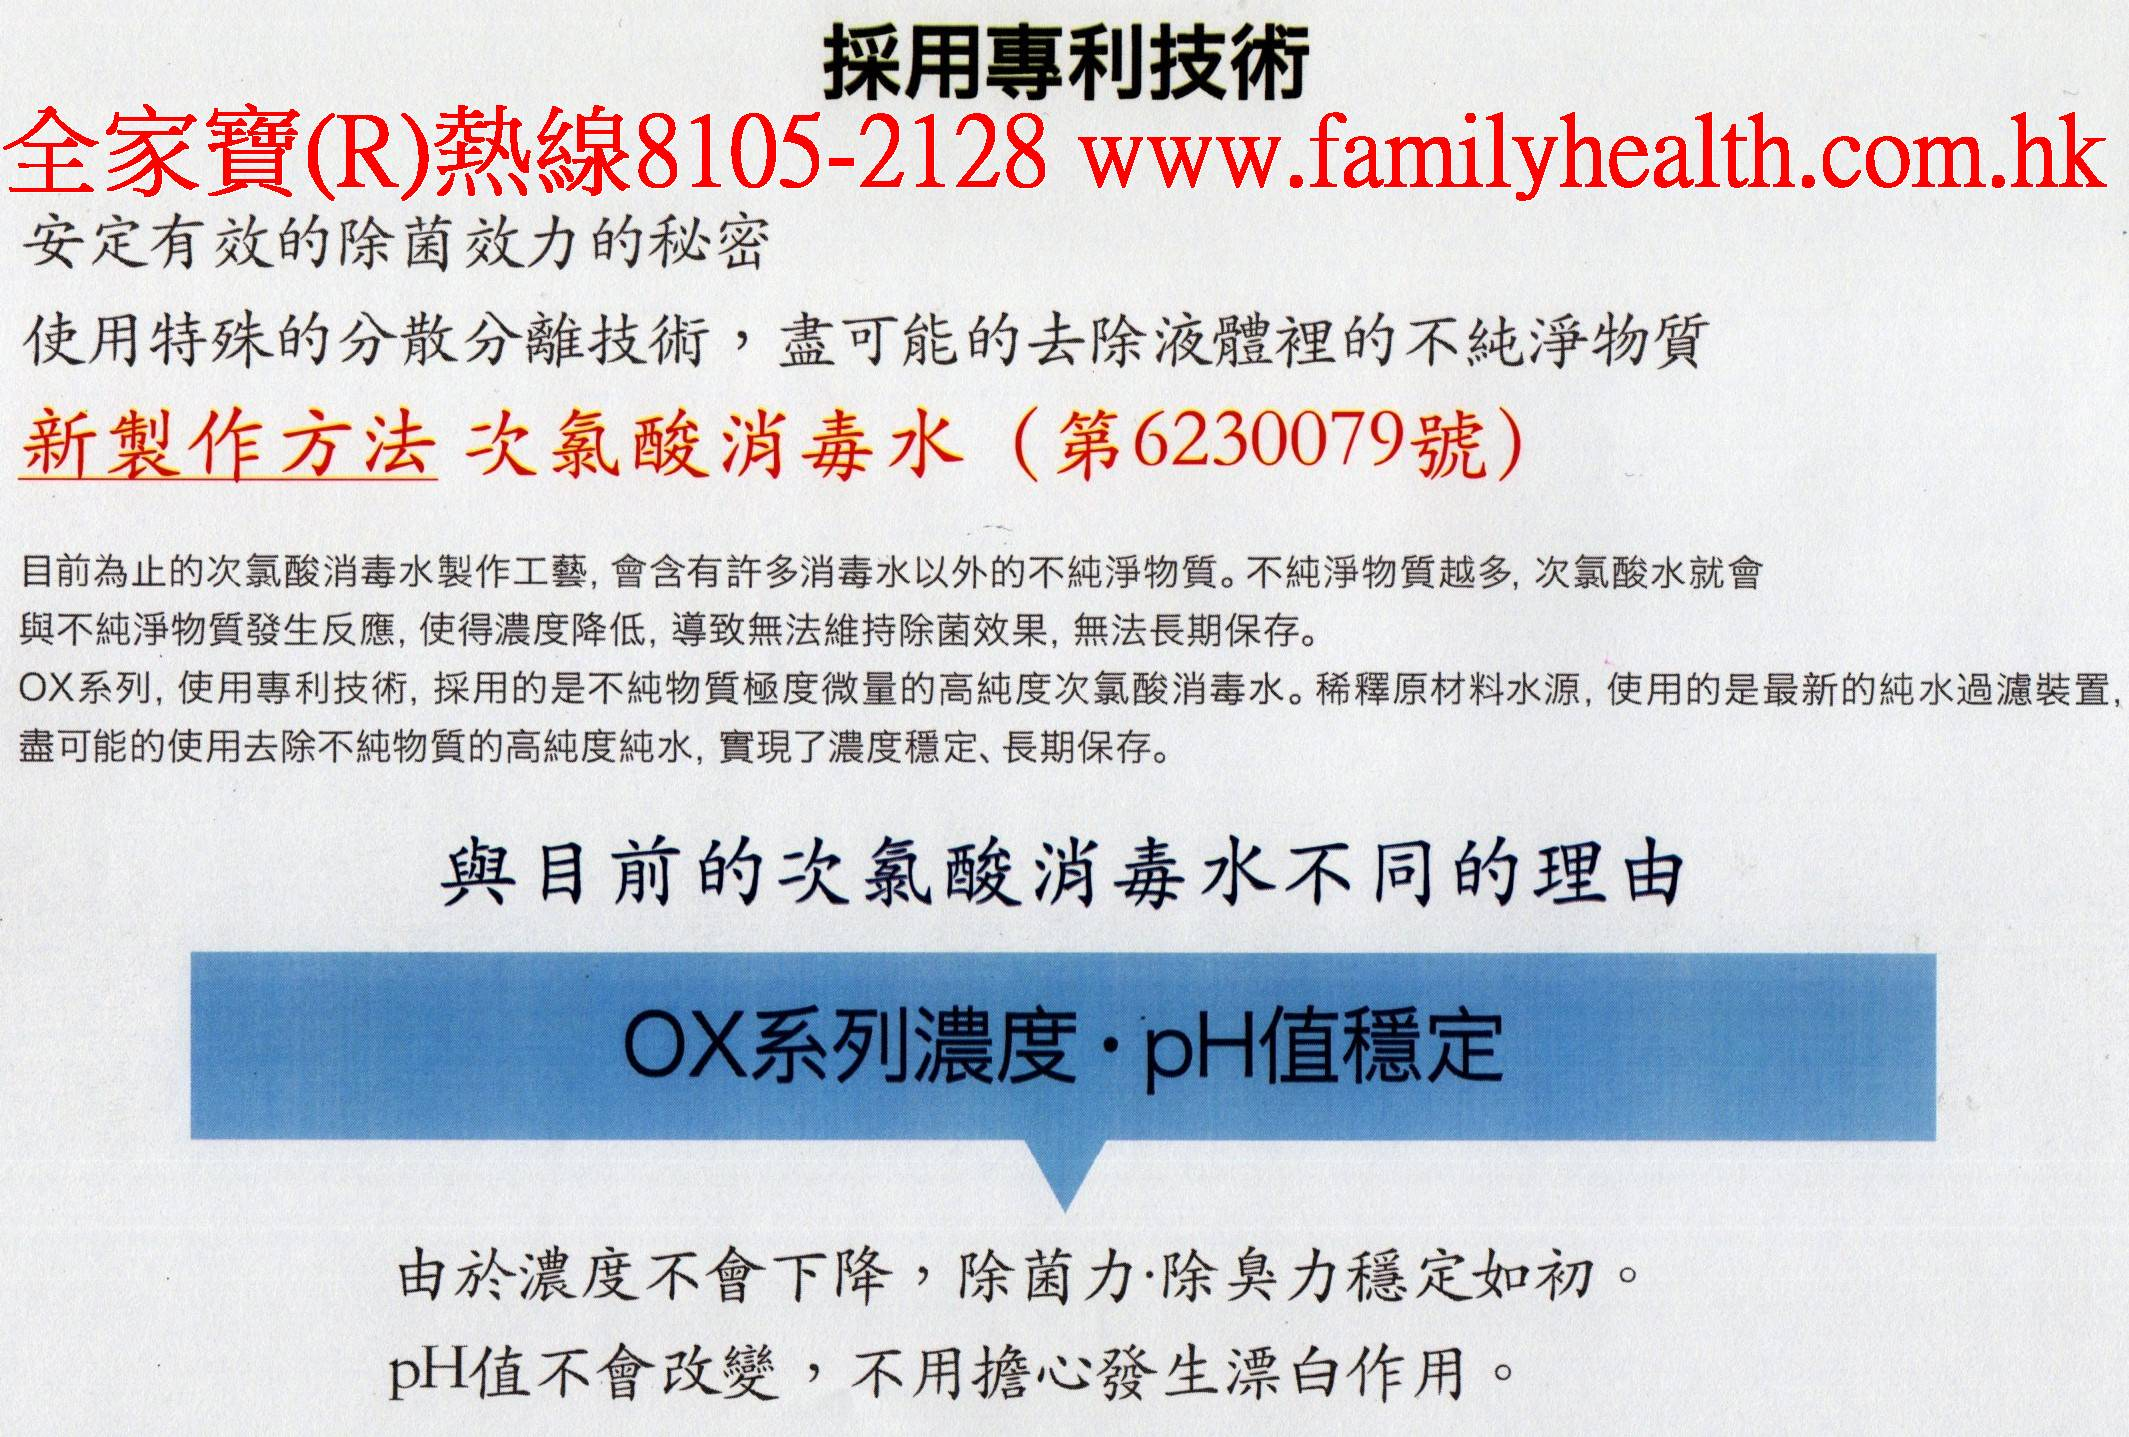 http://www.familyhealth.com.hk/files/full/1083_1.jpg